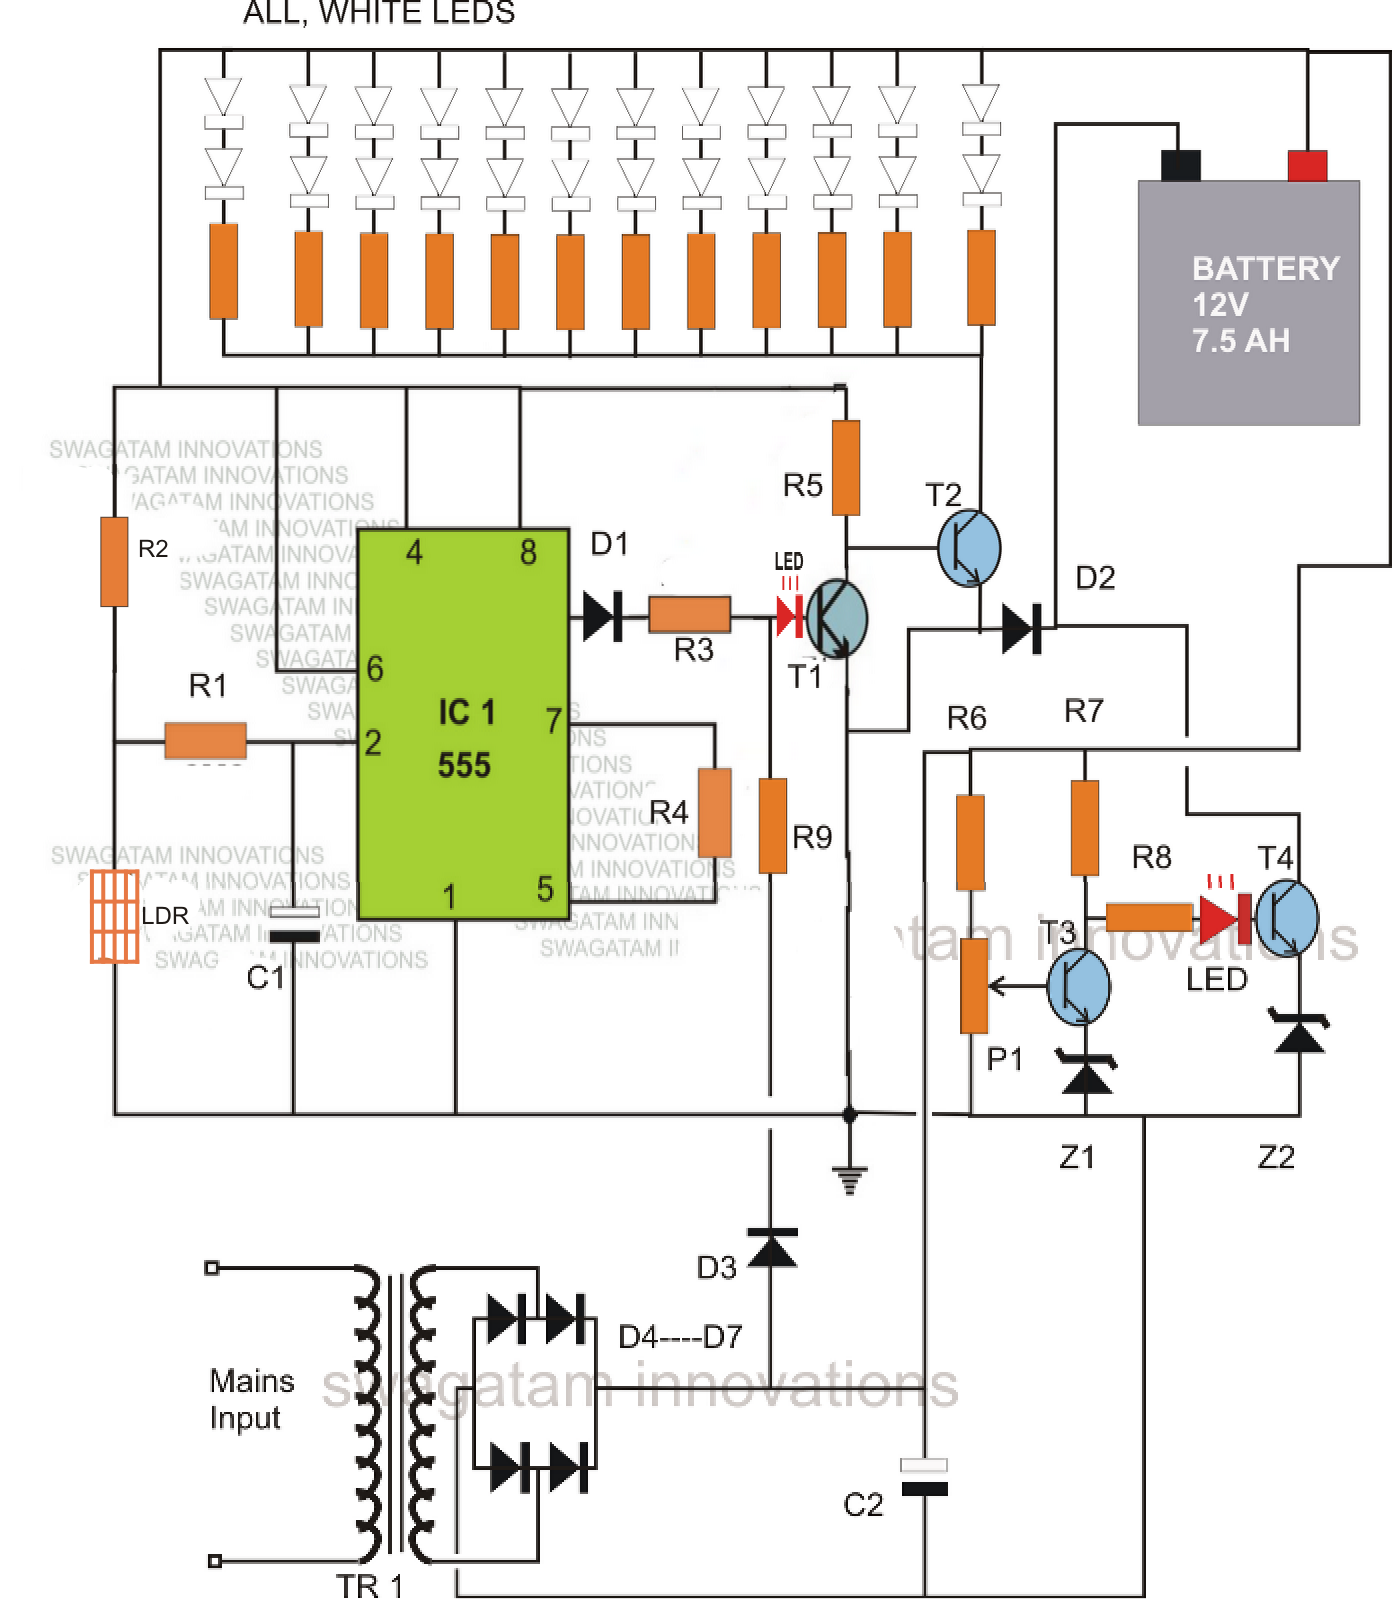 12 Lead Motor Wiring Diagram Constant Current Supply Wiring Diagrams additionally Led Emergency Light Circuit With as well How To Make Solar Battery Charger furthermore Zinc E2 80 93cerium battery further Stopping Criterion Of Lead Acid Battery Charging Operation With Smps. on lead acid battery charger circuit diagram 2